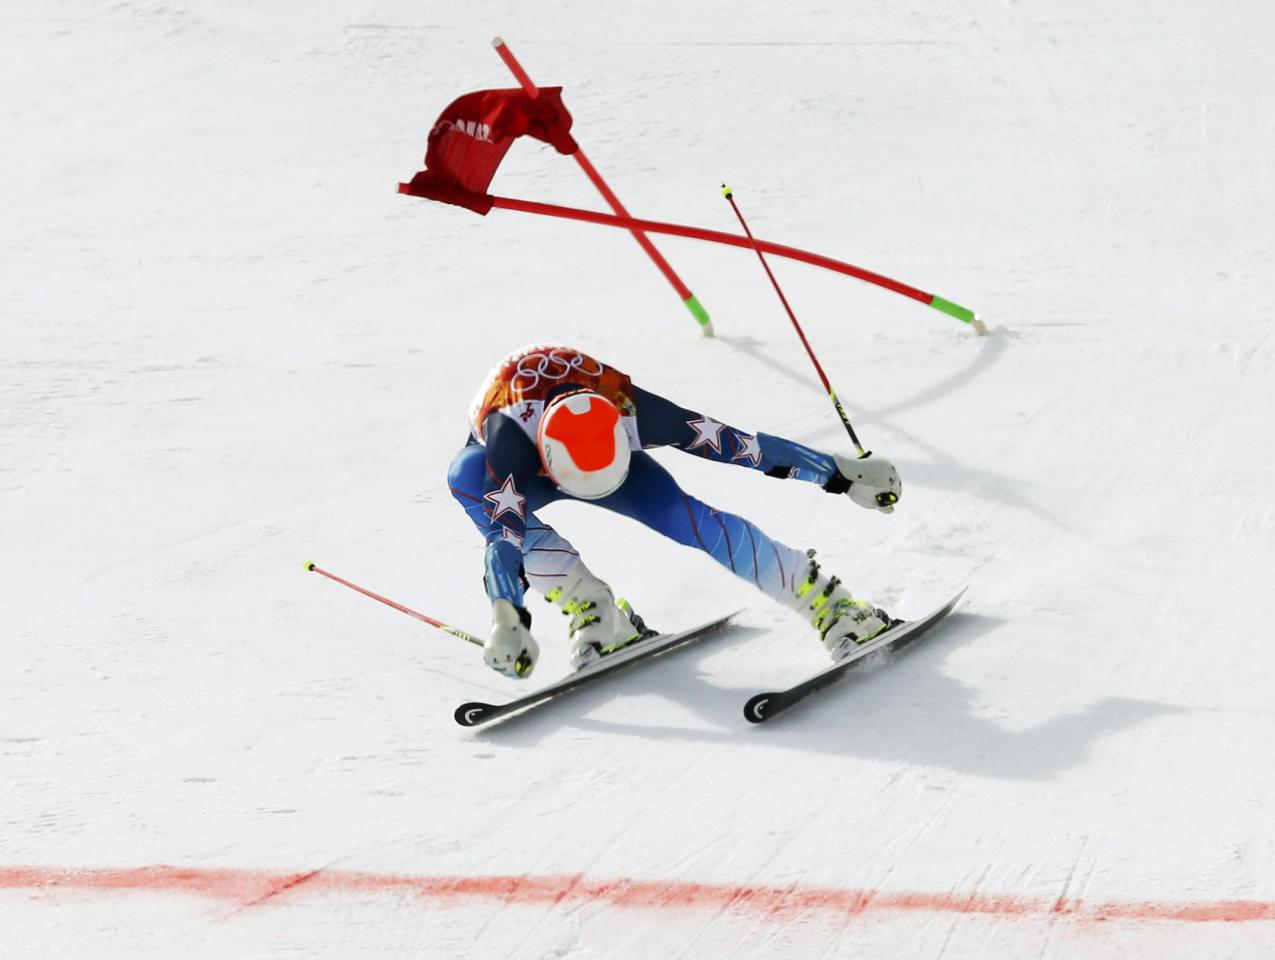 Bode Miller of the U.S. lunges towards the finish line during the first run of the men's alpine skiing giant slalom event in the Sochi 2014 Winter Olympics at the Rosa Khutor Alpine Center February 19, 2014. REUTERS/Mike Segar (RUSSIA - Tags: OLYMPICS SPORT SKIING TPX IMAGES OF THE DAY)